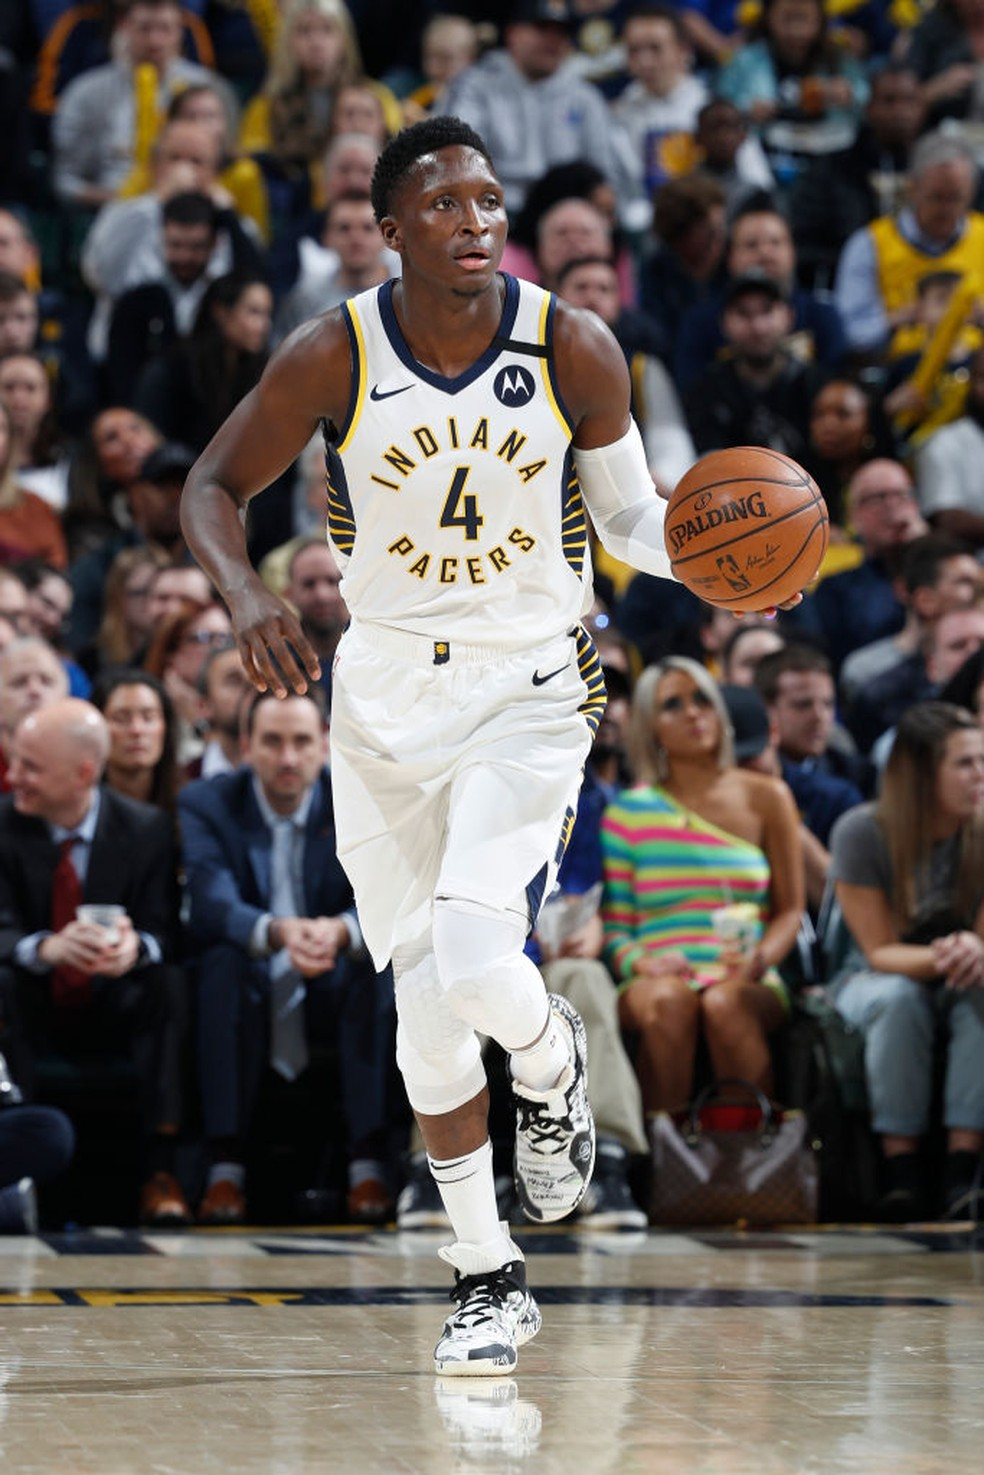 Victor Oladipo, ala-armador do Indiana Pacers - Joe Robbins/Getty Images